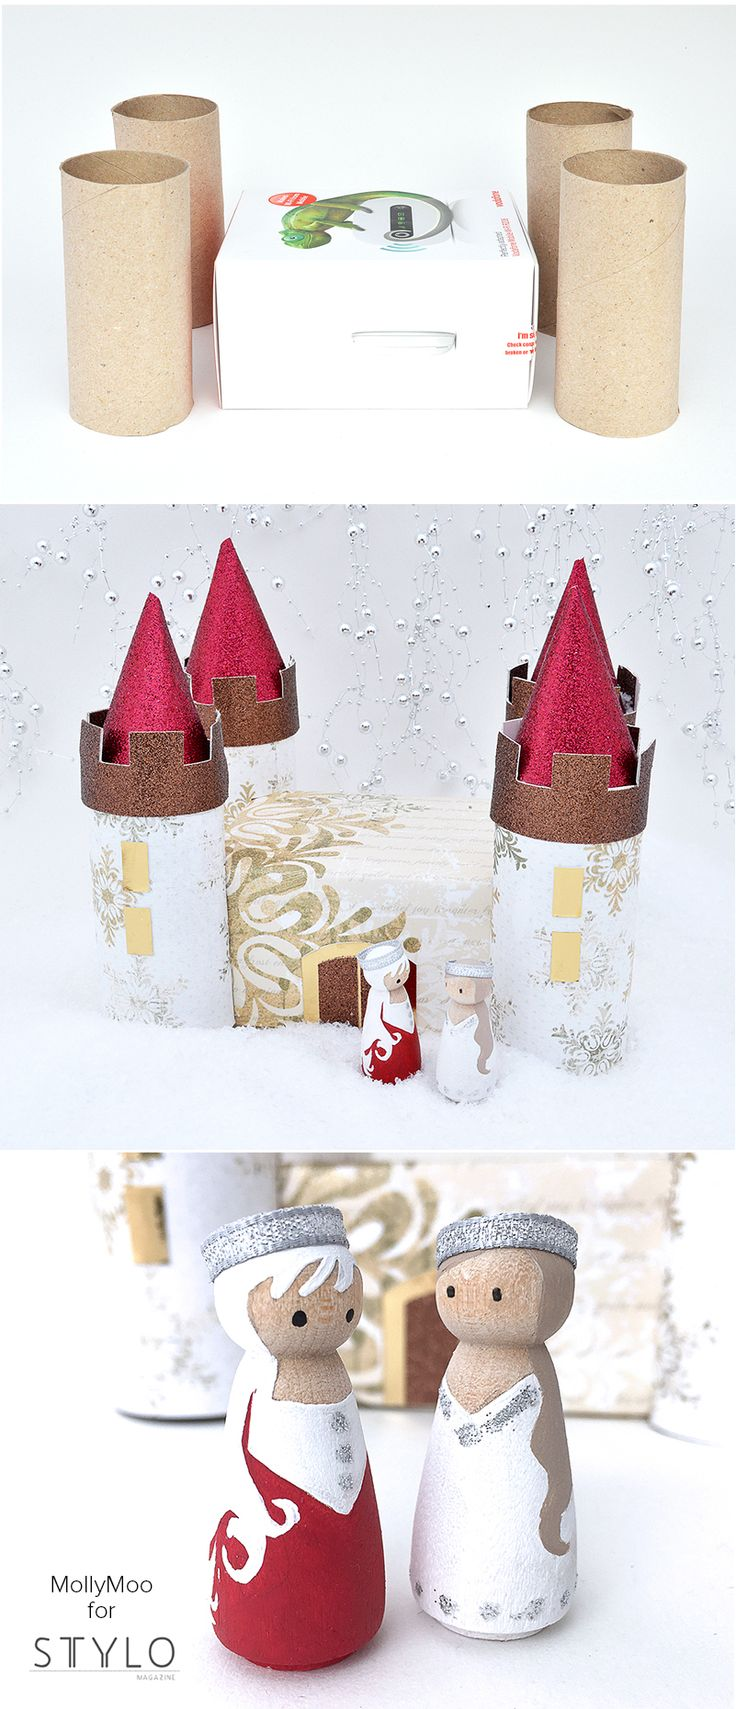 DIY WINTER PALACE & Peg Doll Princesses - cardboard box and toilet roll crafting | MollyMooCrafts.com for #stylomagazine (pg 115) @celinab